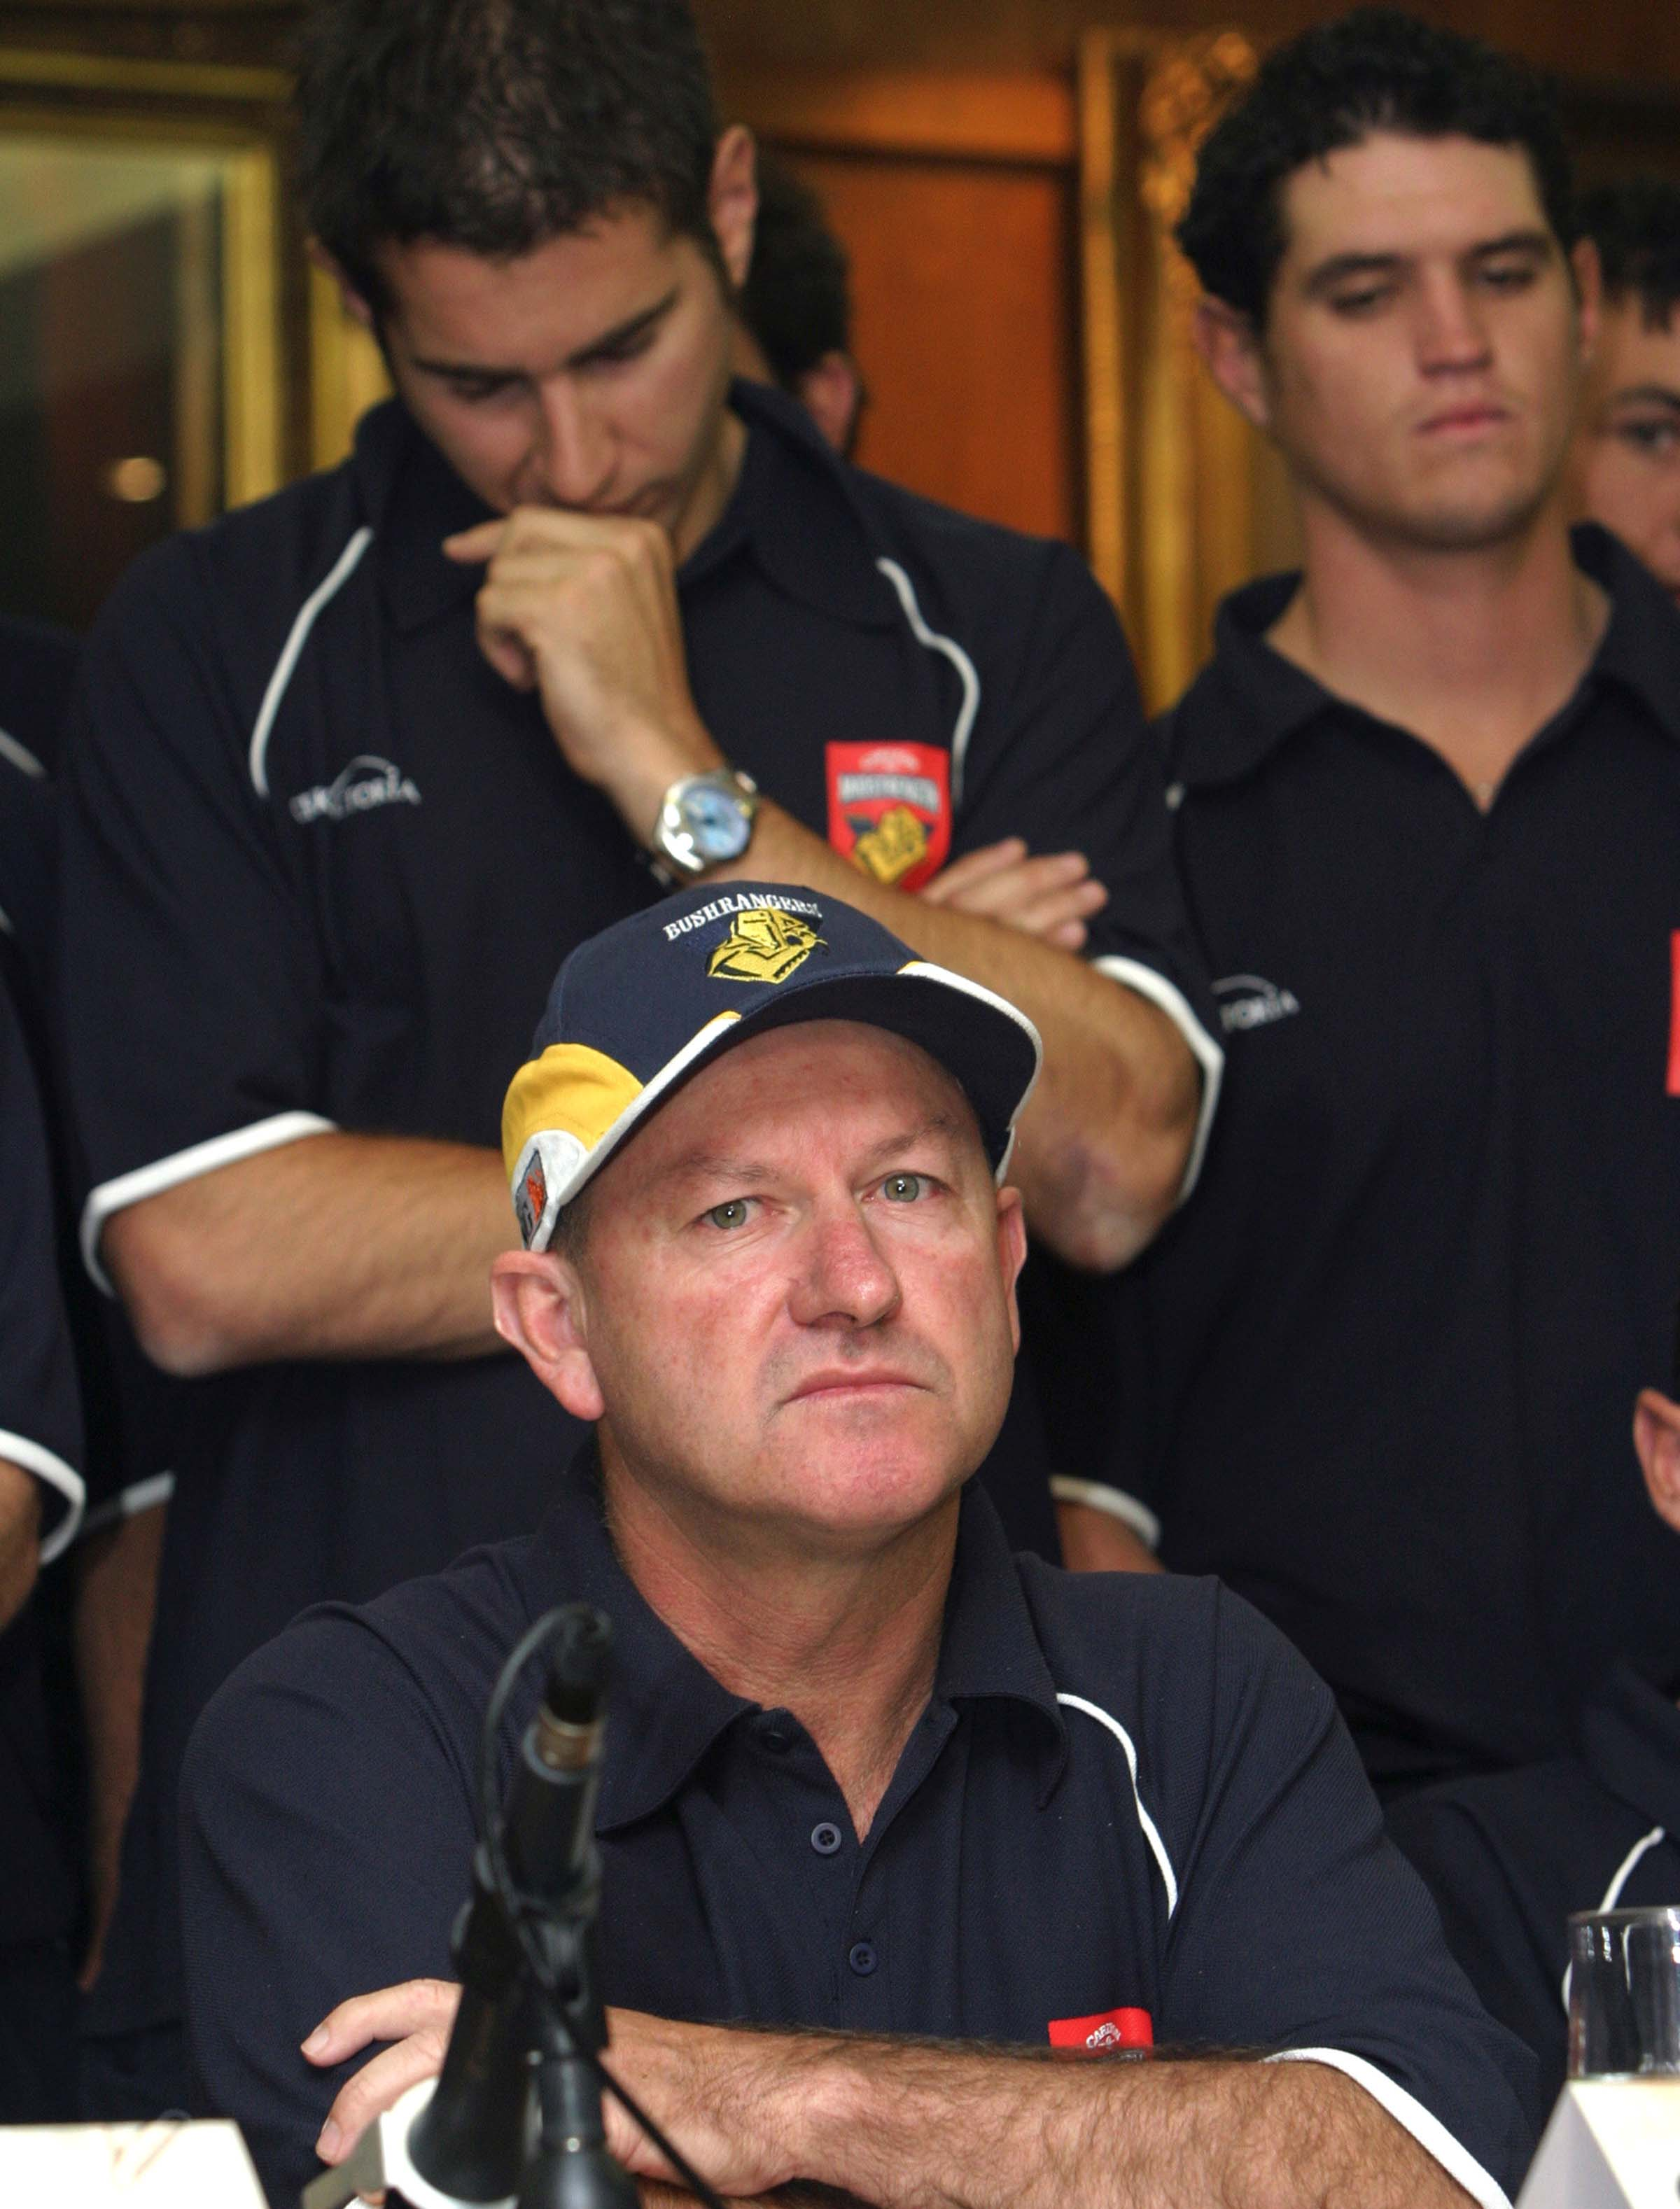 Shipperd and the Vics players speak with media three days after Hookes' death // Getty